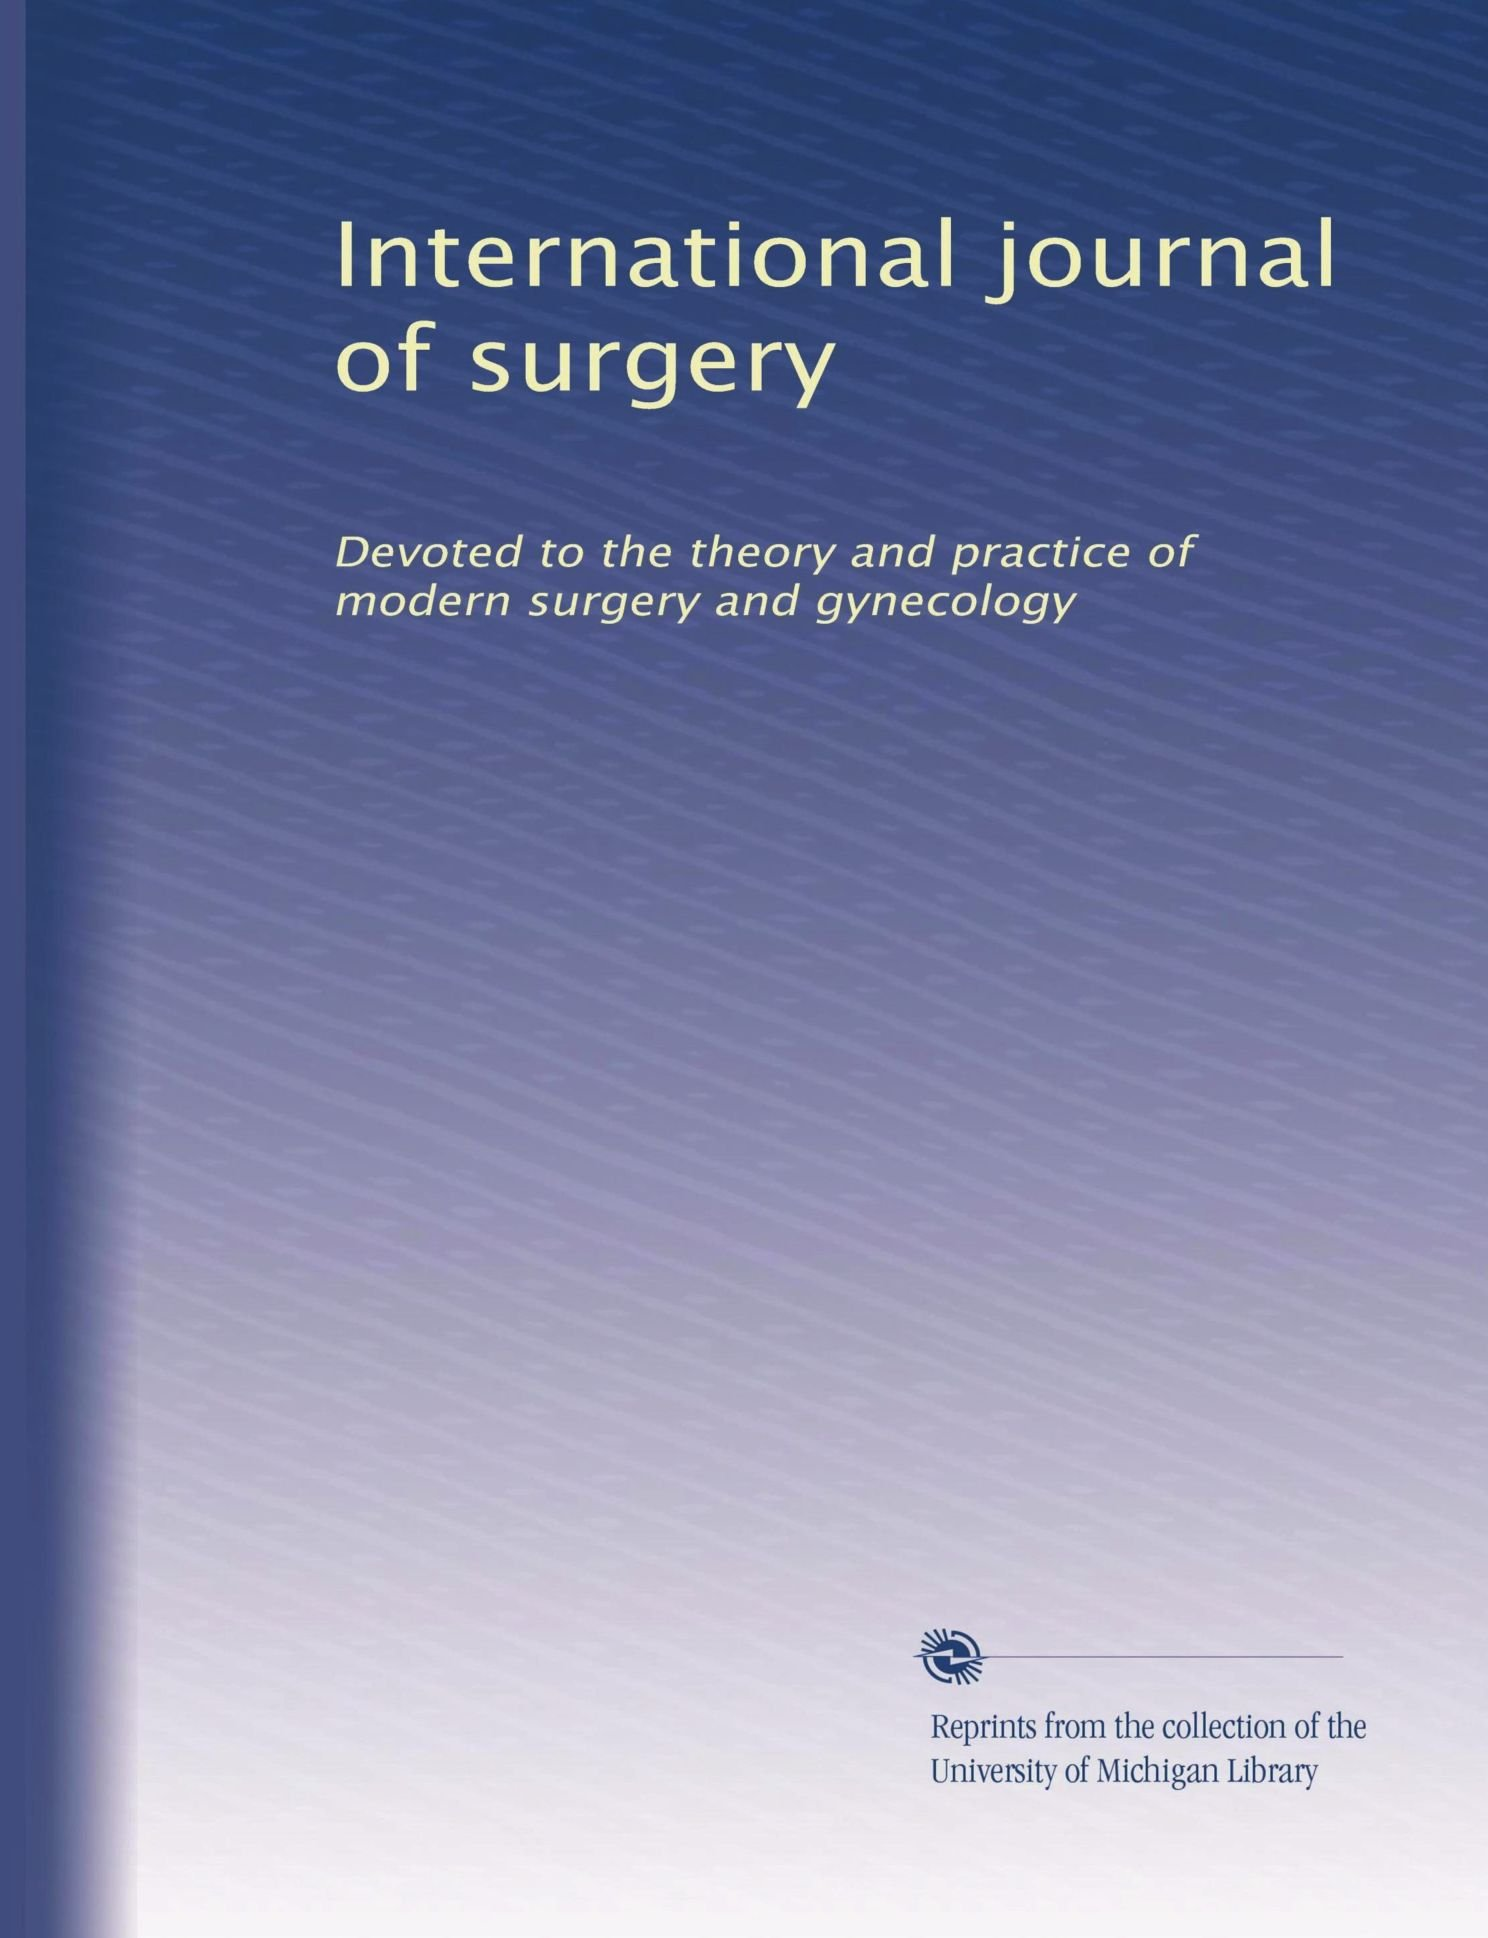 International journal of surgery: Devoted to the theory and practice of modern surgery and gynecology (Volume 8) PDF